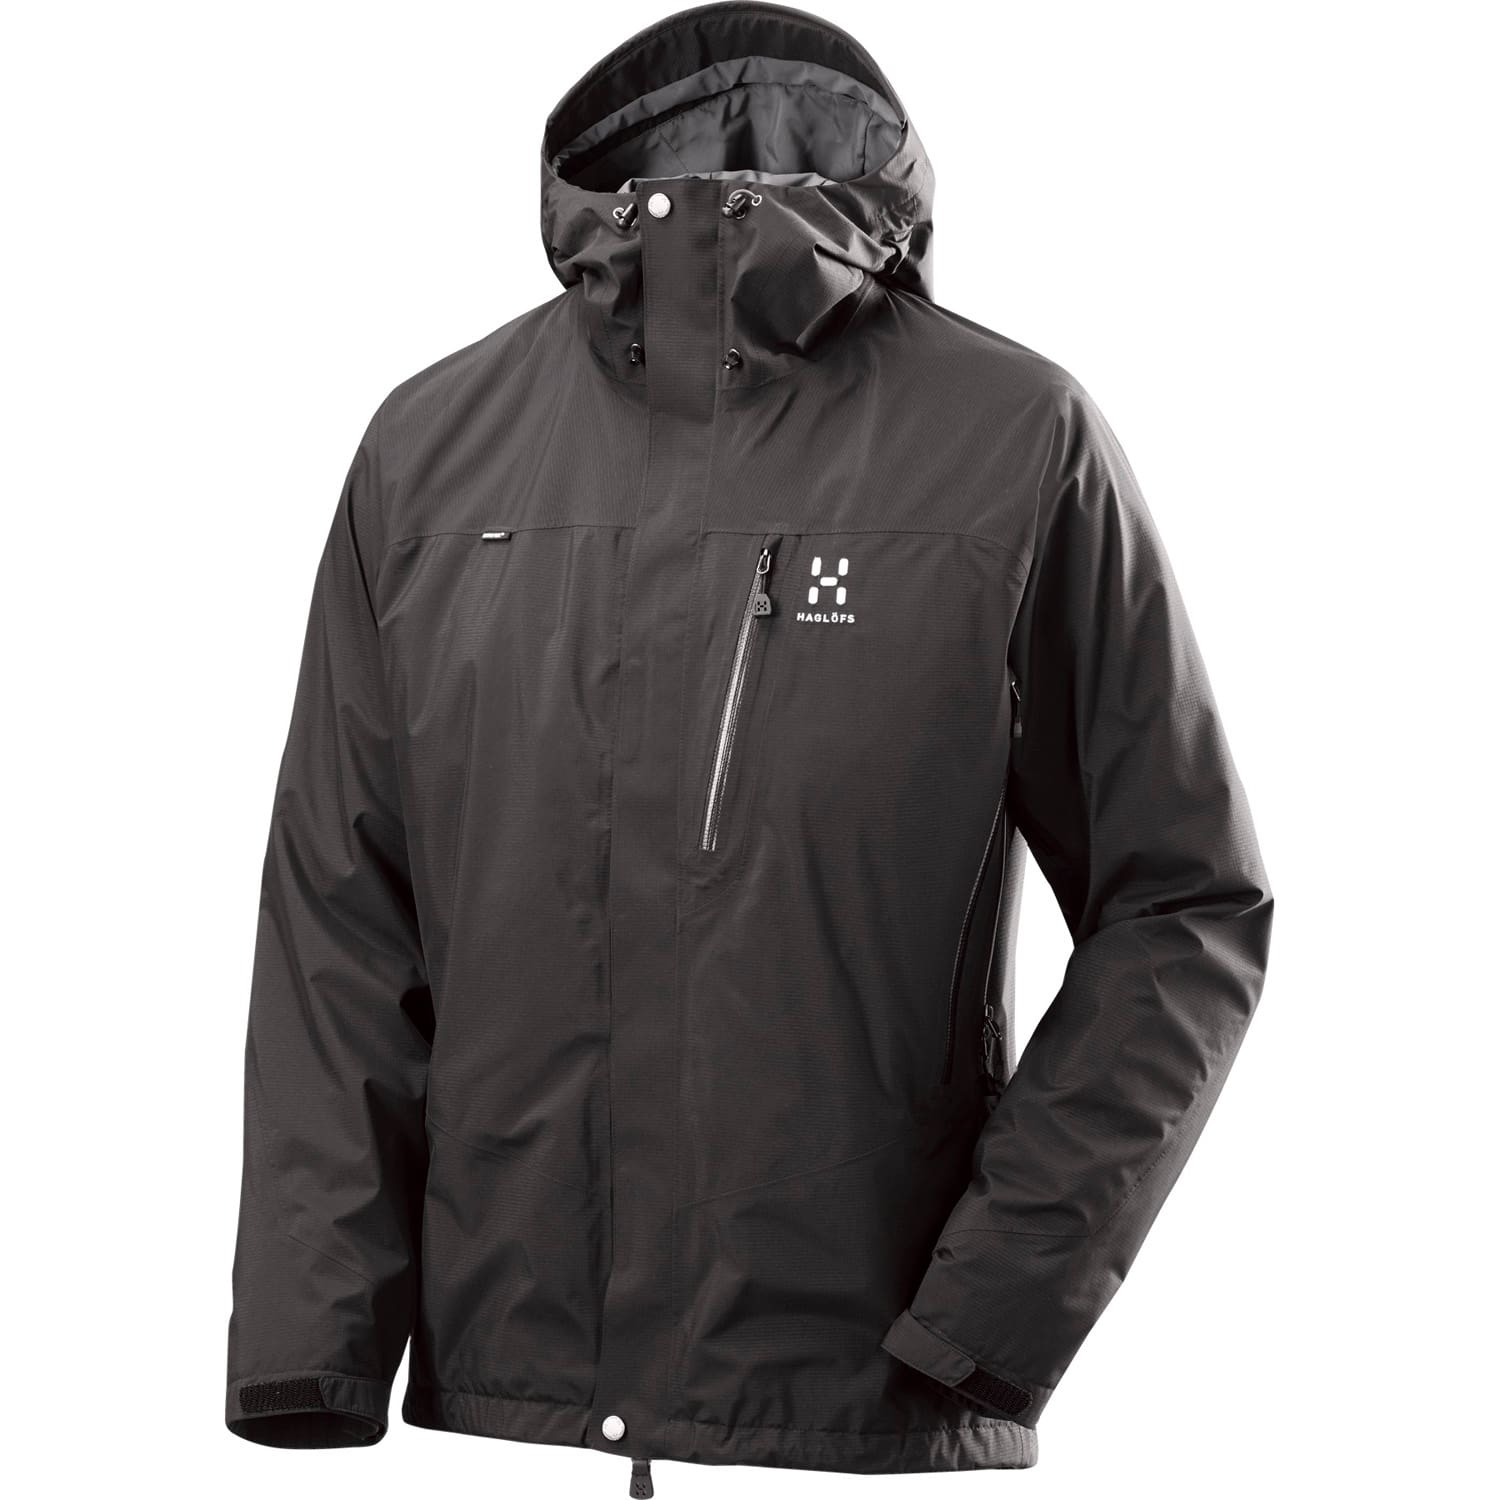 Astral III Jacket Men